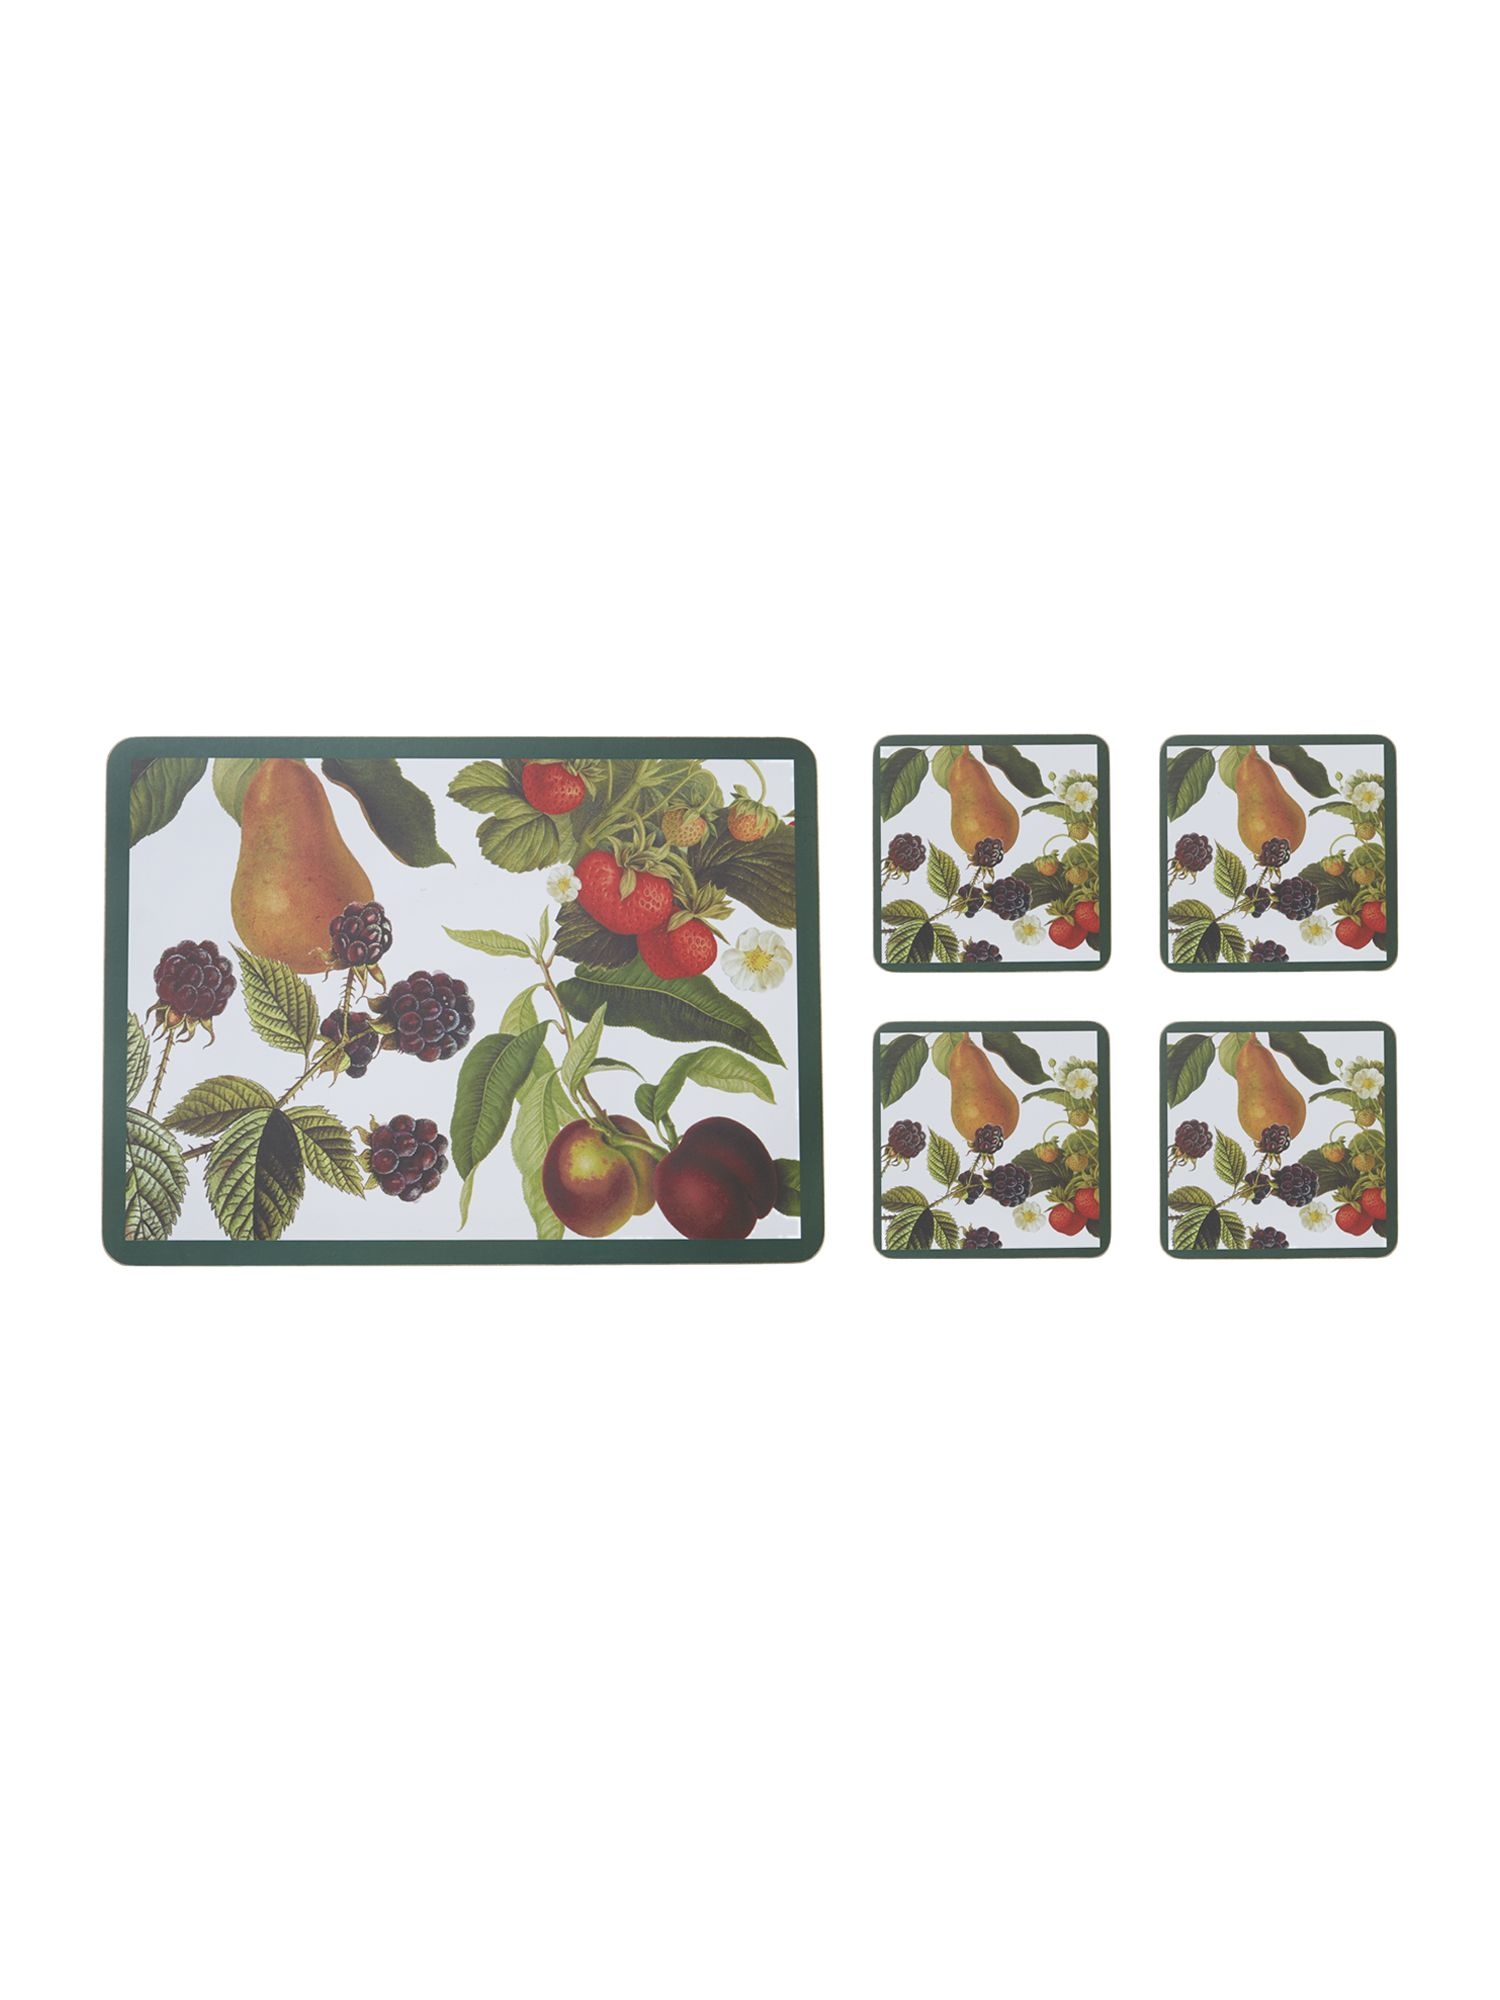 Botanical fruits placemat and coaster set